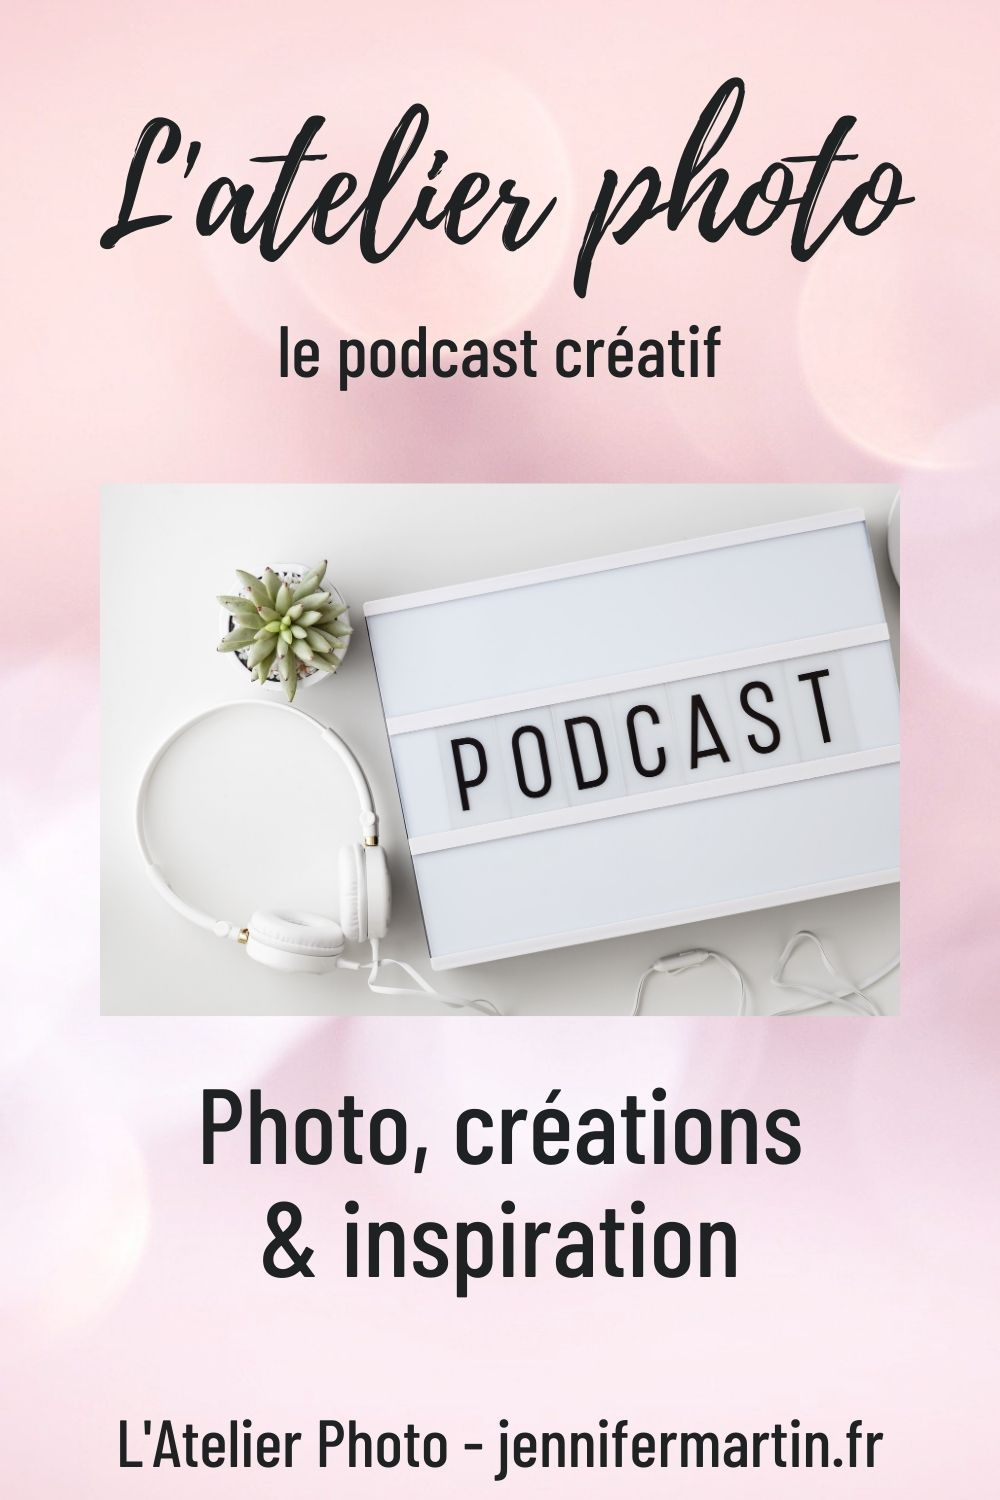 L'Atelier Photo - le podcast créatif